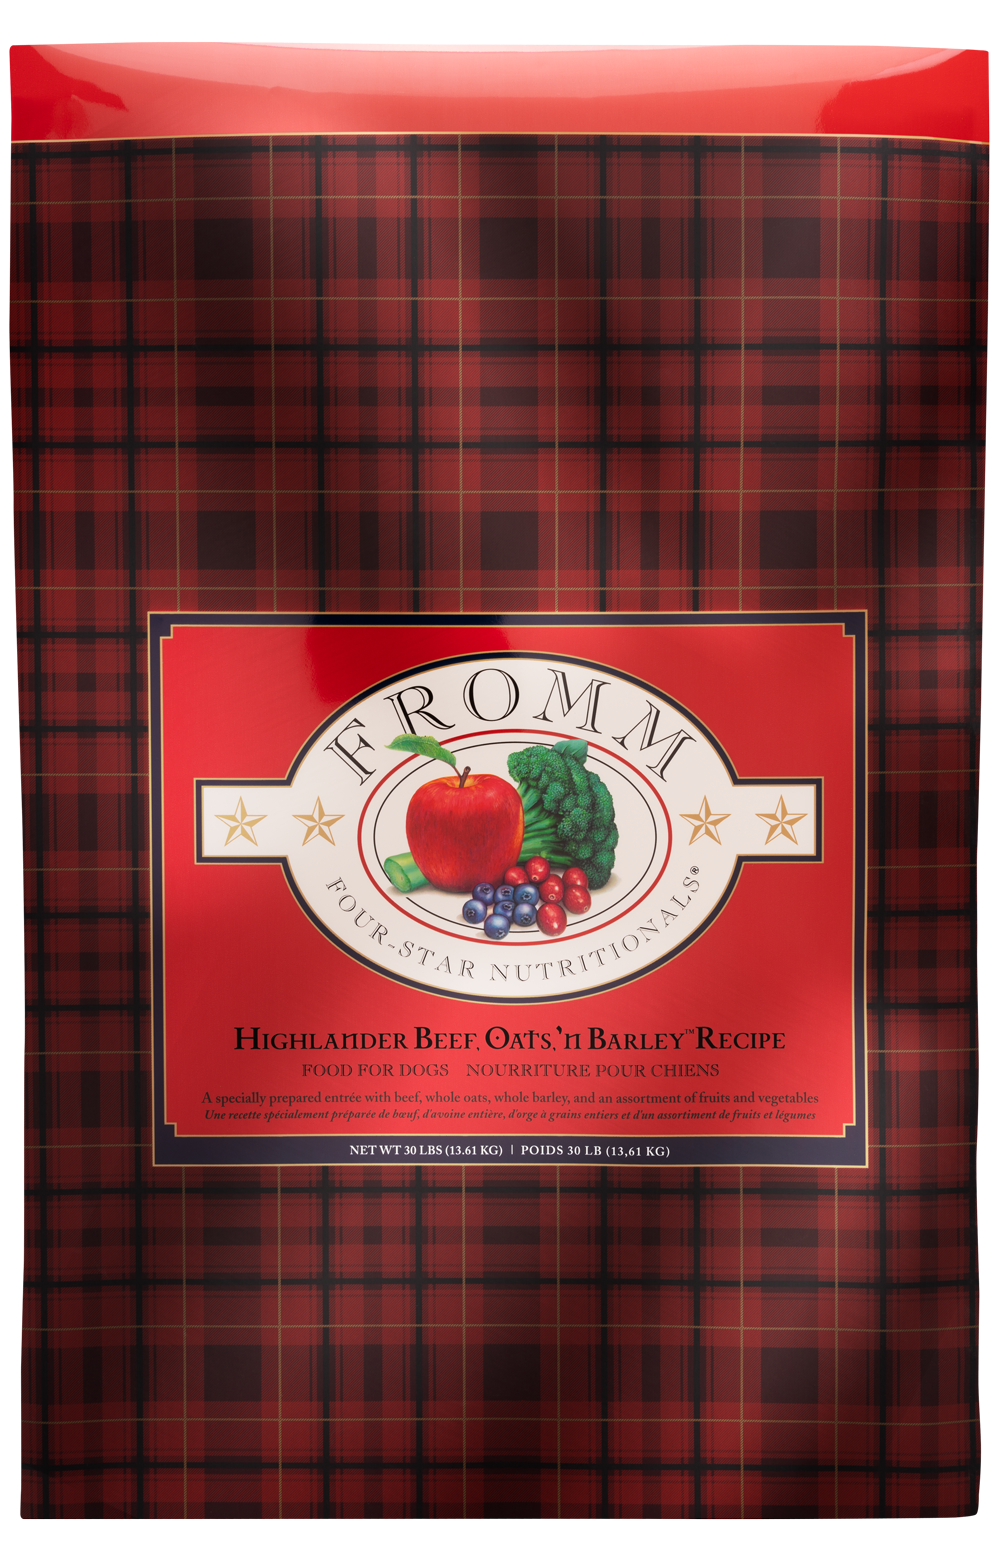 Fromm Family Fromm Dog Highlander Beef Oats 'N Barley